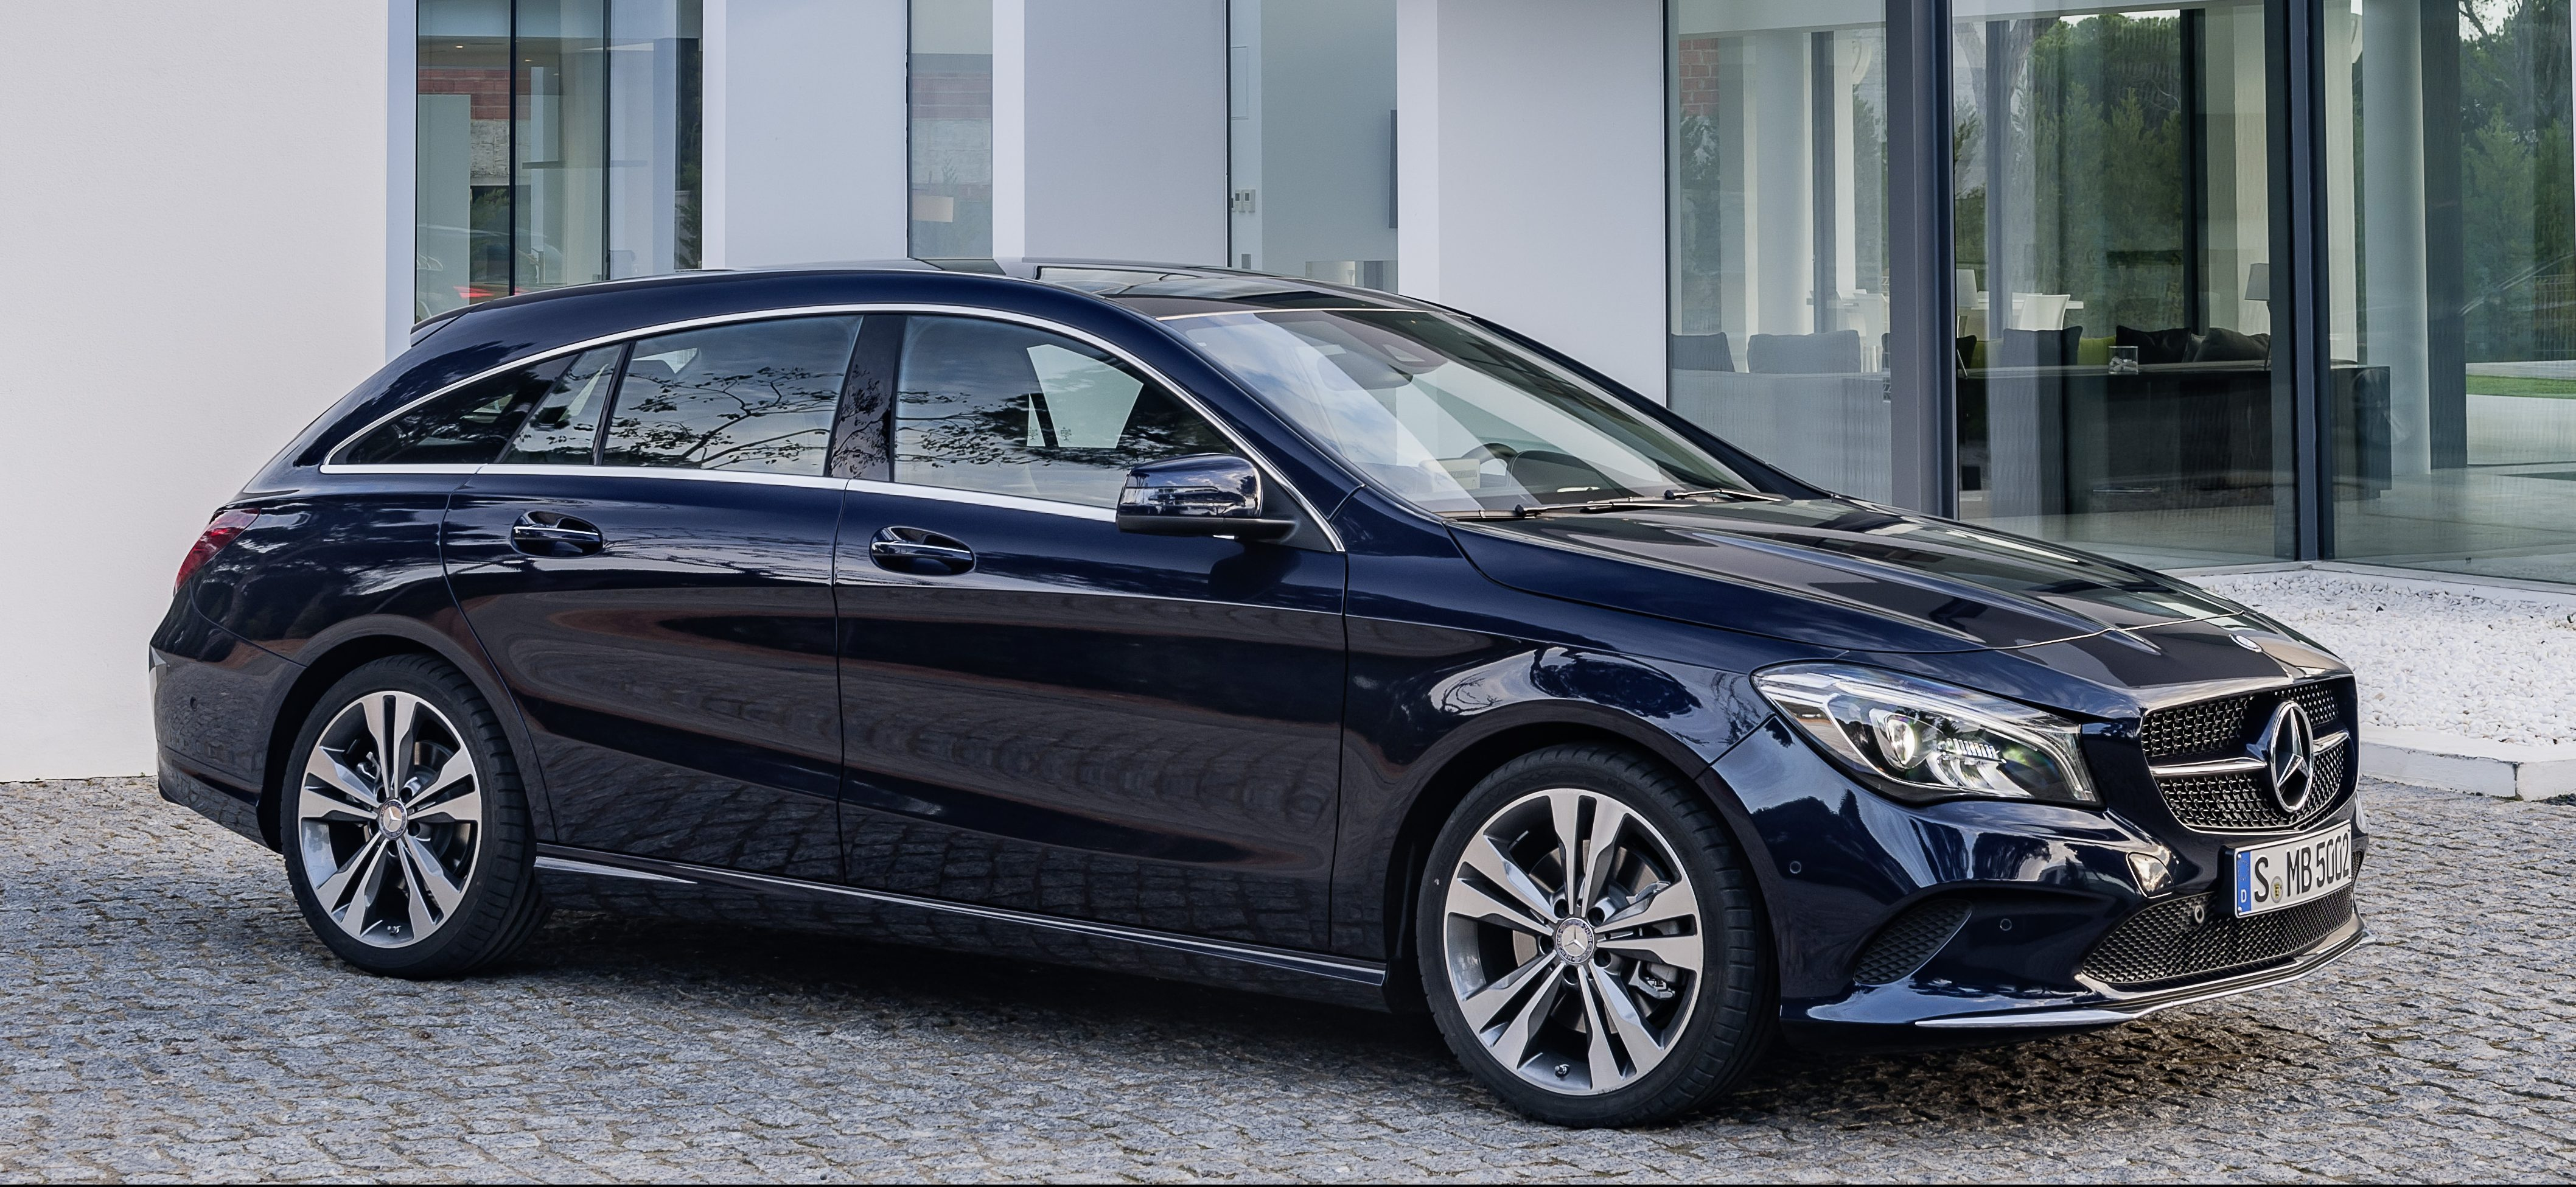 Second mercedes benz plant to be built in hungary for Mercedes benz second